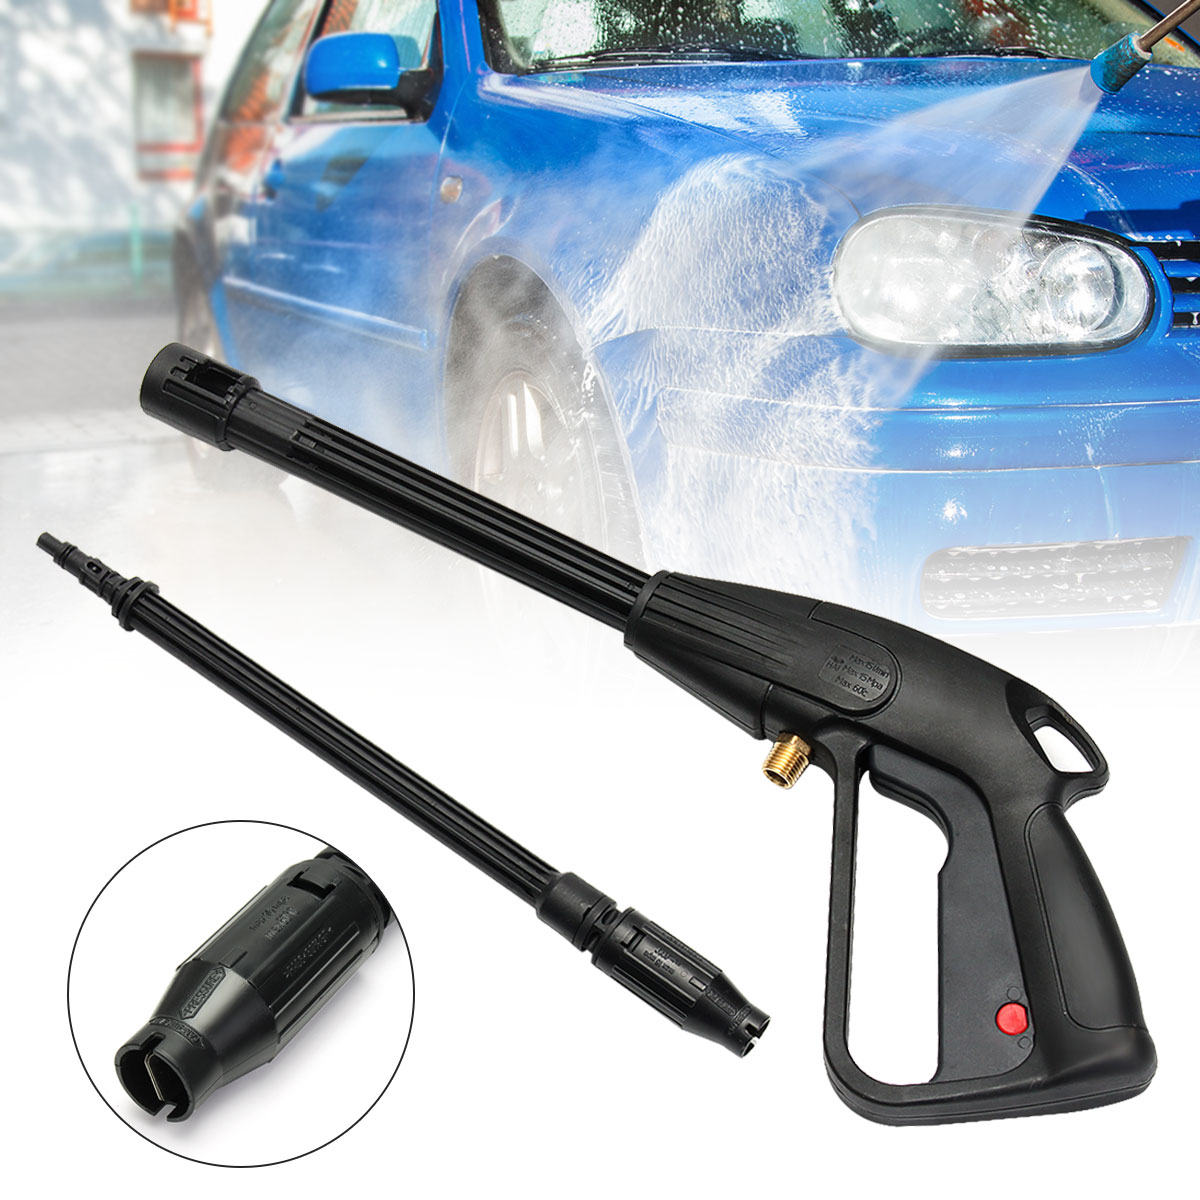 High Pressure Power Washer Spray Nozzle Adjustable Water Gun Home Washing Accessories CX001B for Car Garden Cleaning 465mm high pressure washer for car washer spray cleaner garden watering nozzle water jet gun car cleaning washing tools